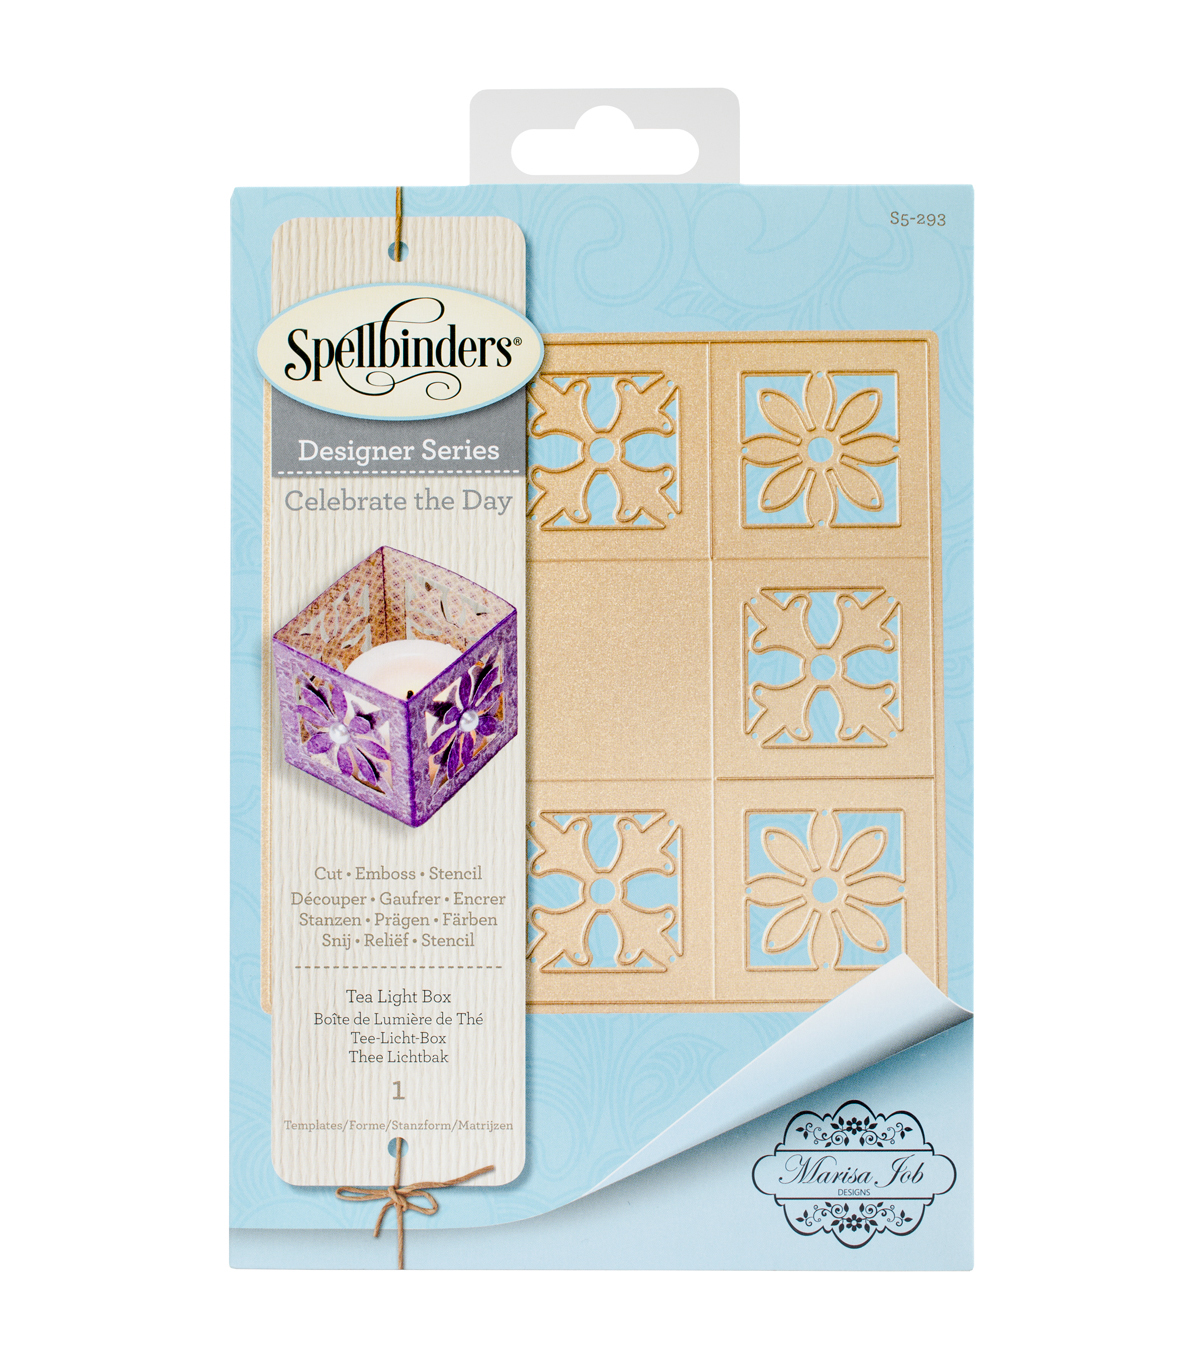 Spellbinders Shapeabilities Etched Die-Tea Light Box